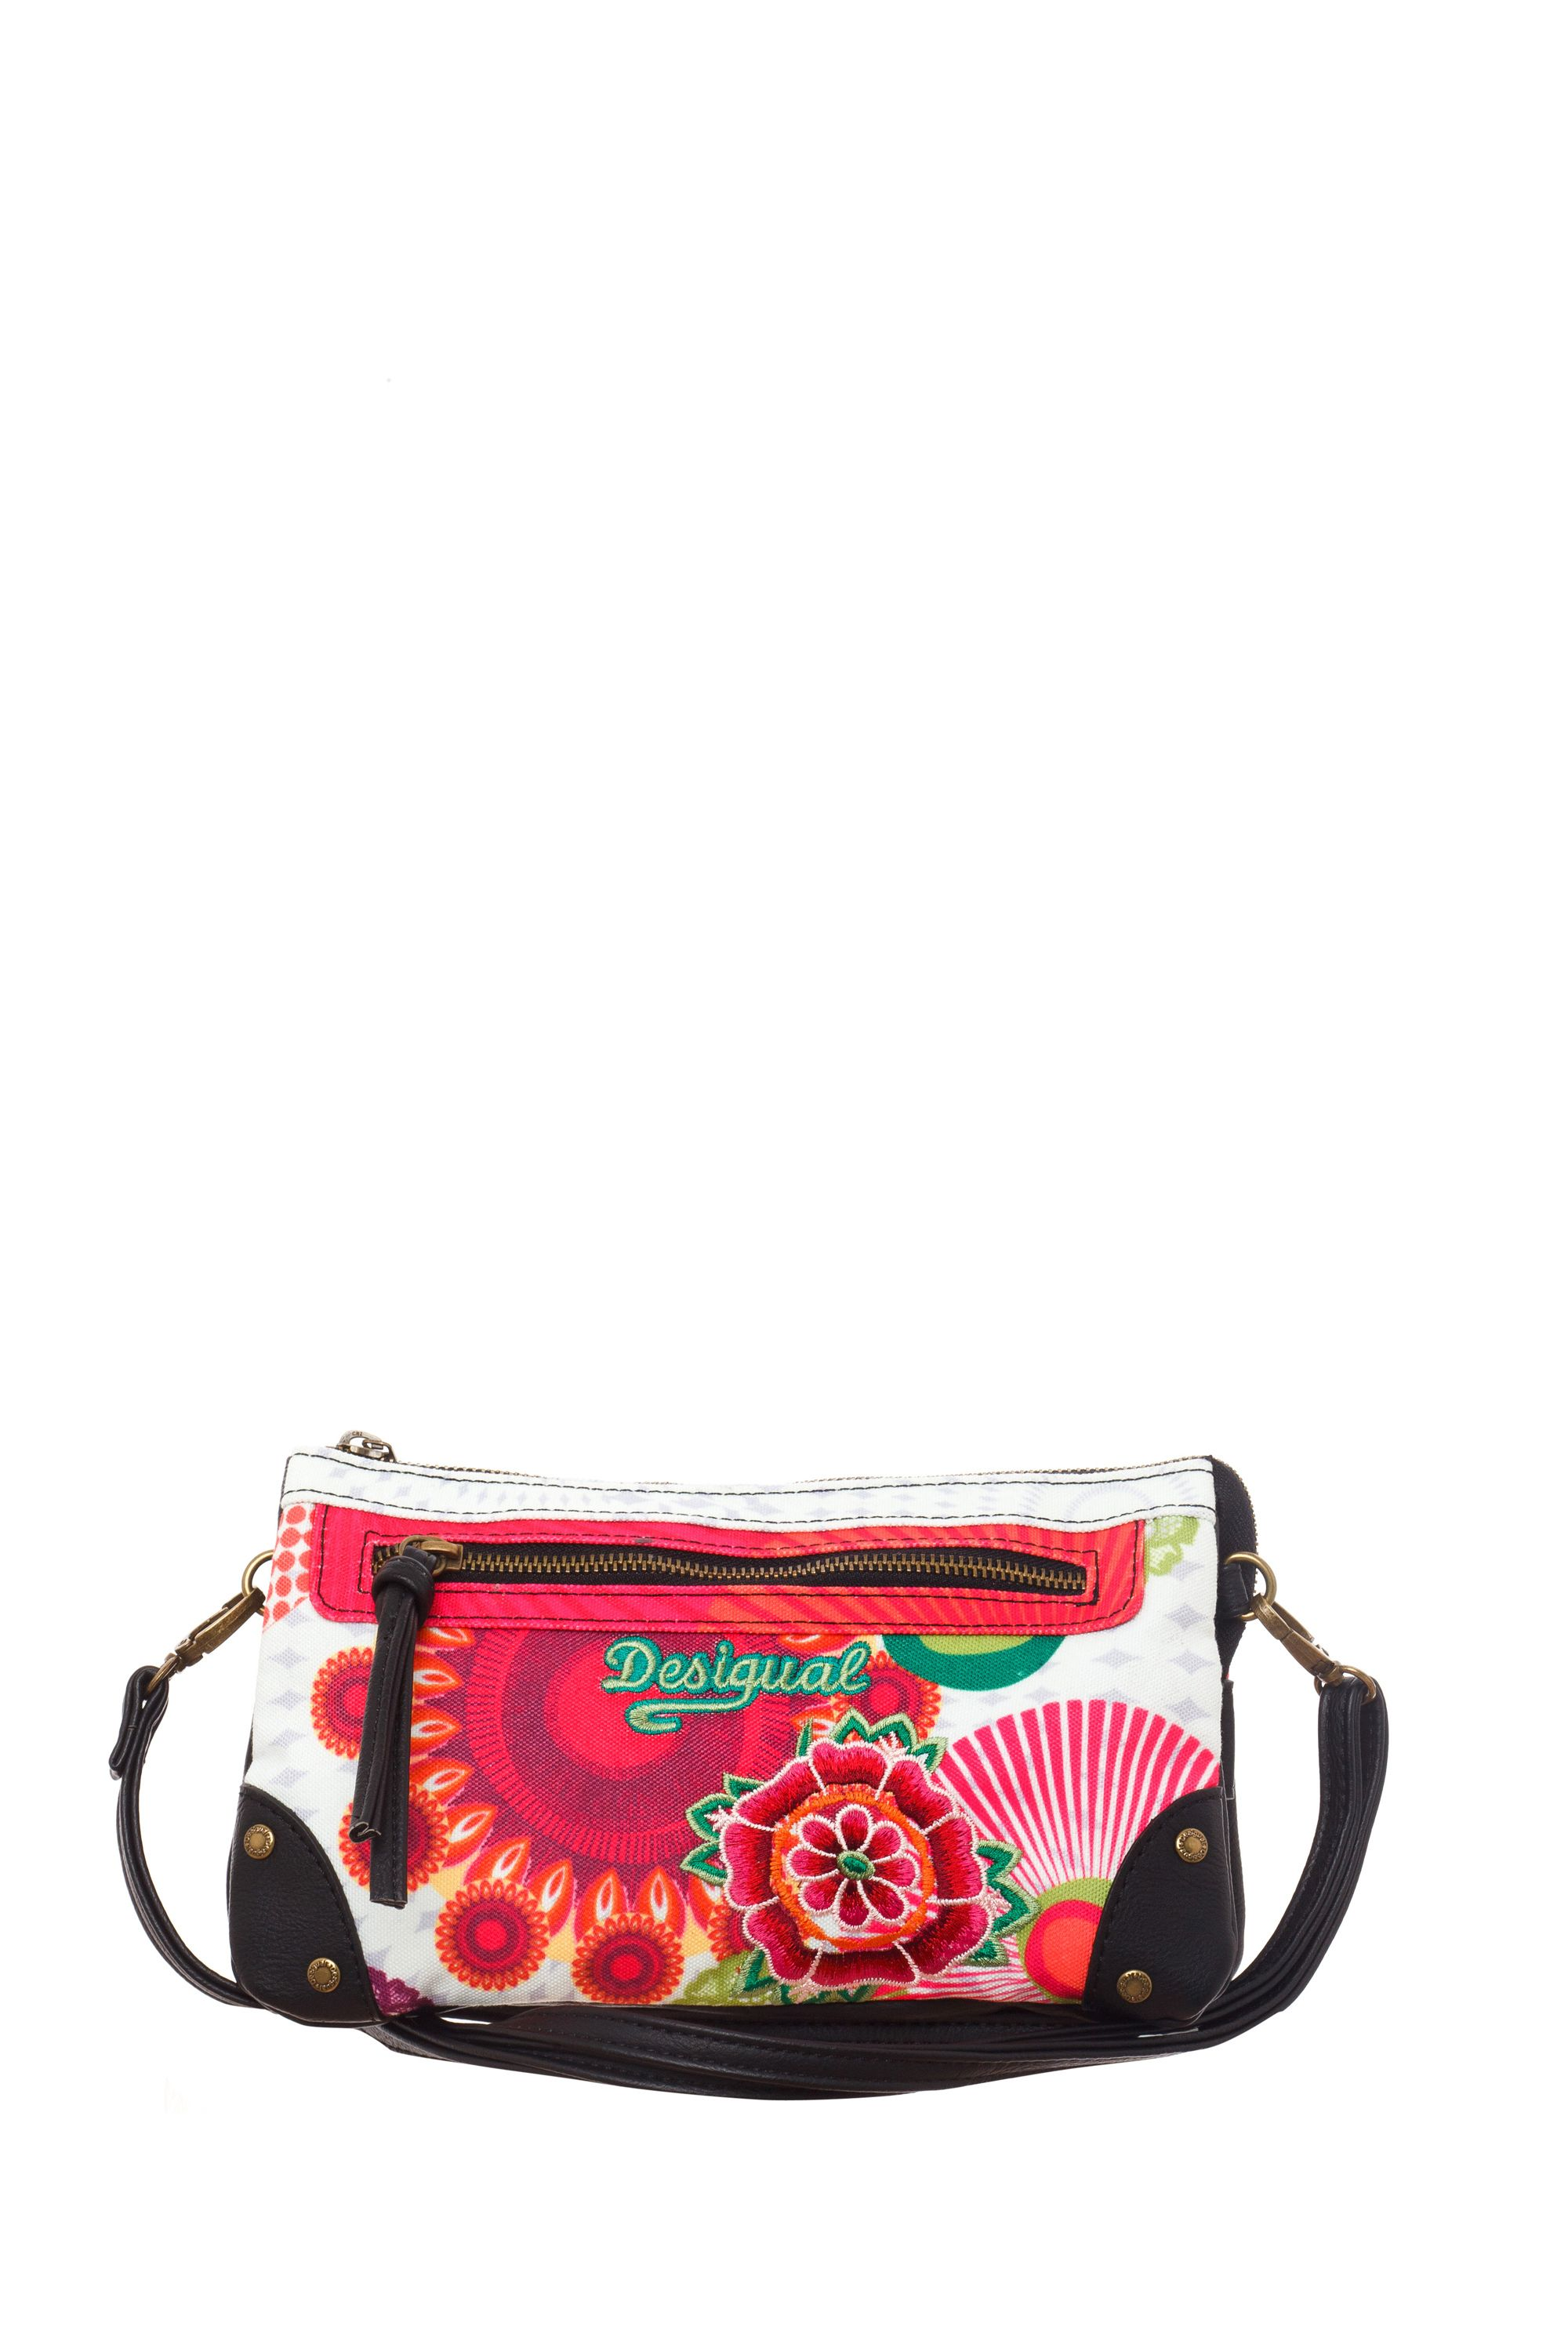 Dorothea floreada bag